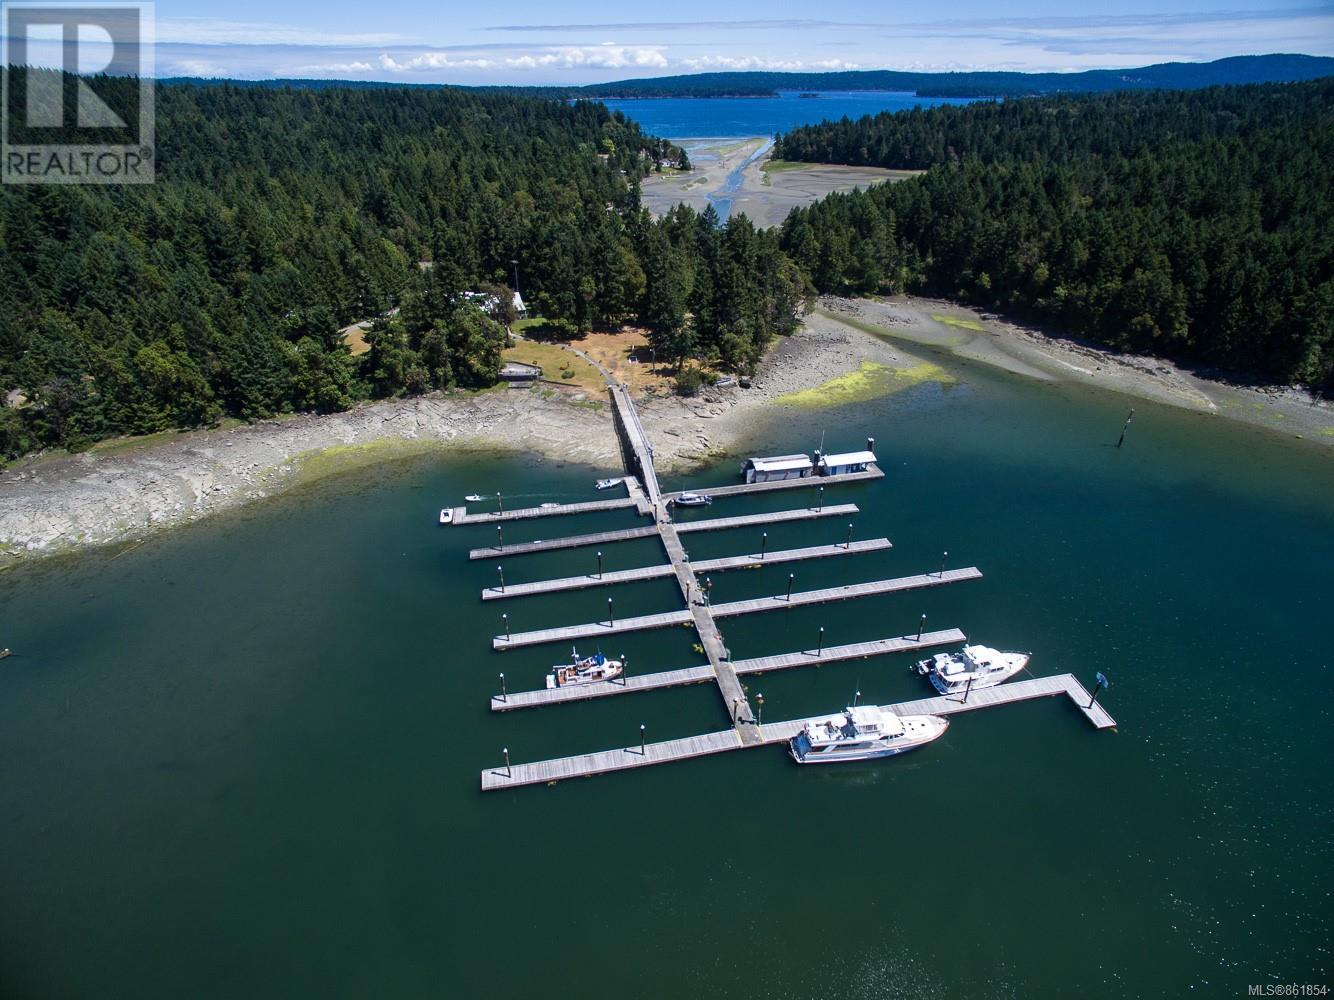 MLS® #861854 - Thetis Island Other For sale Image #2